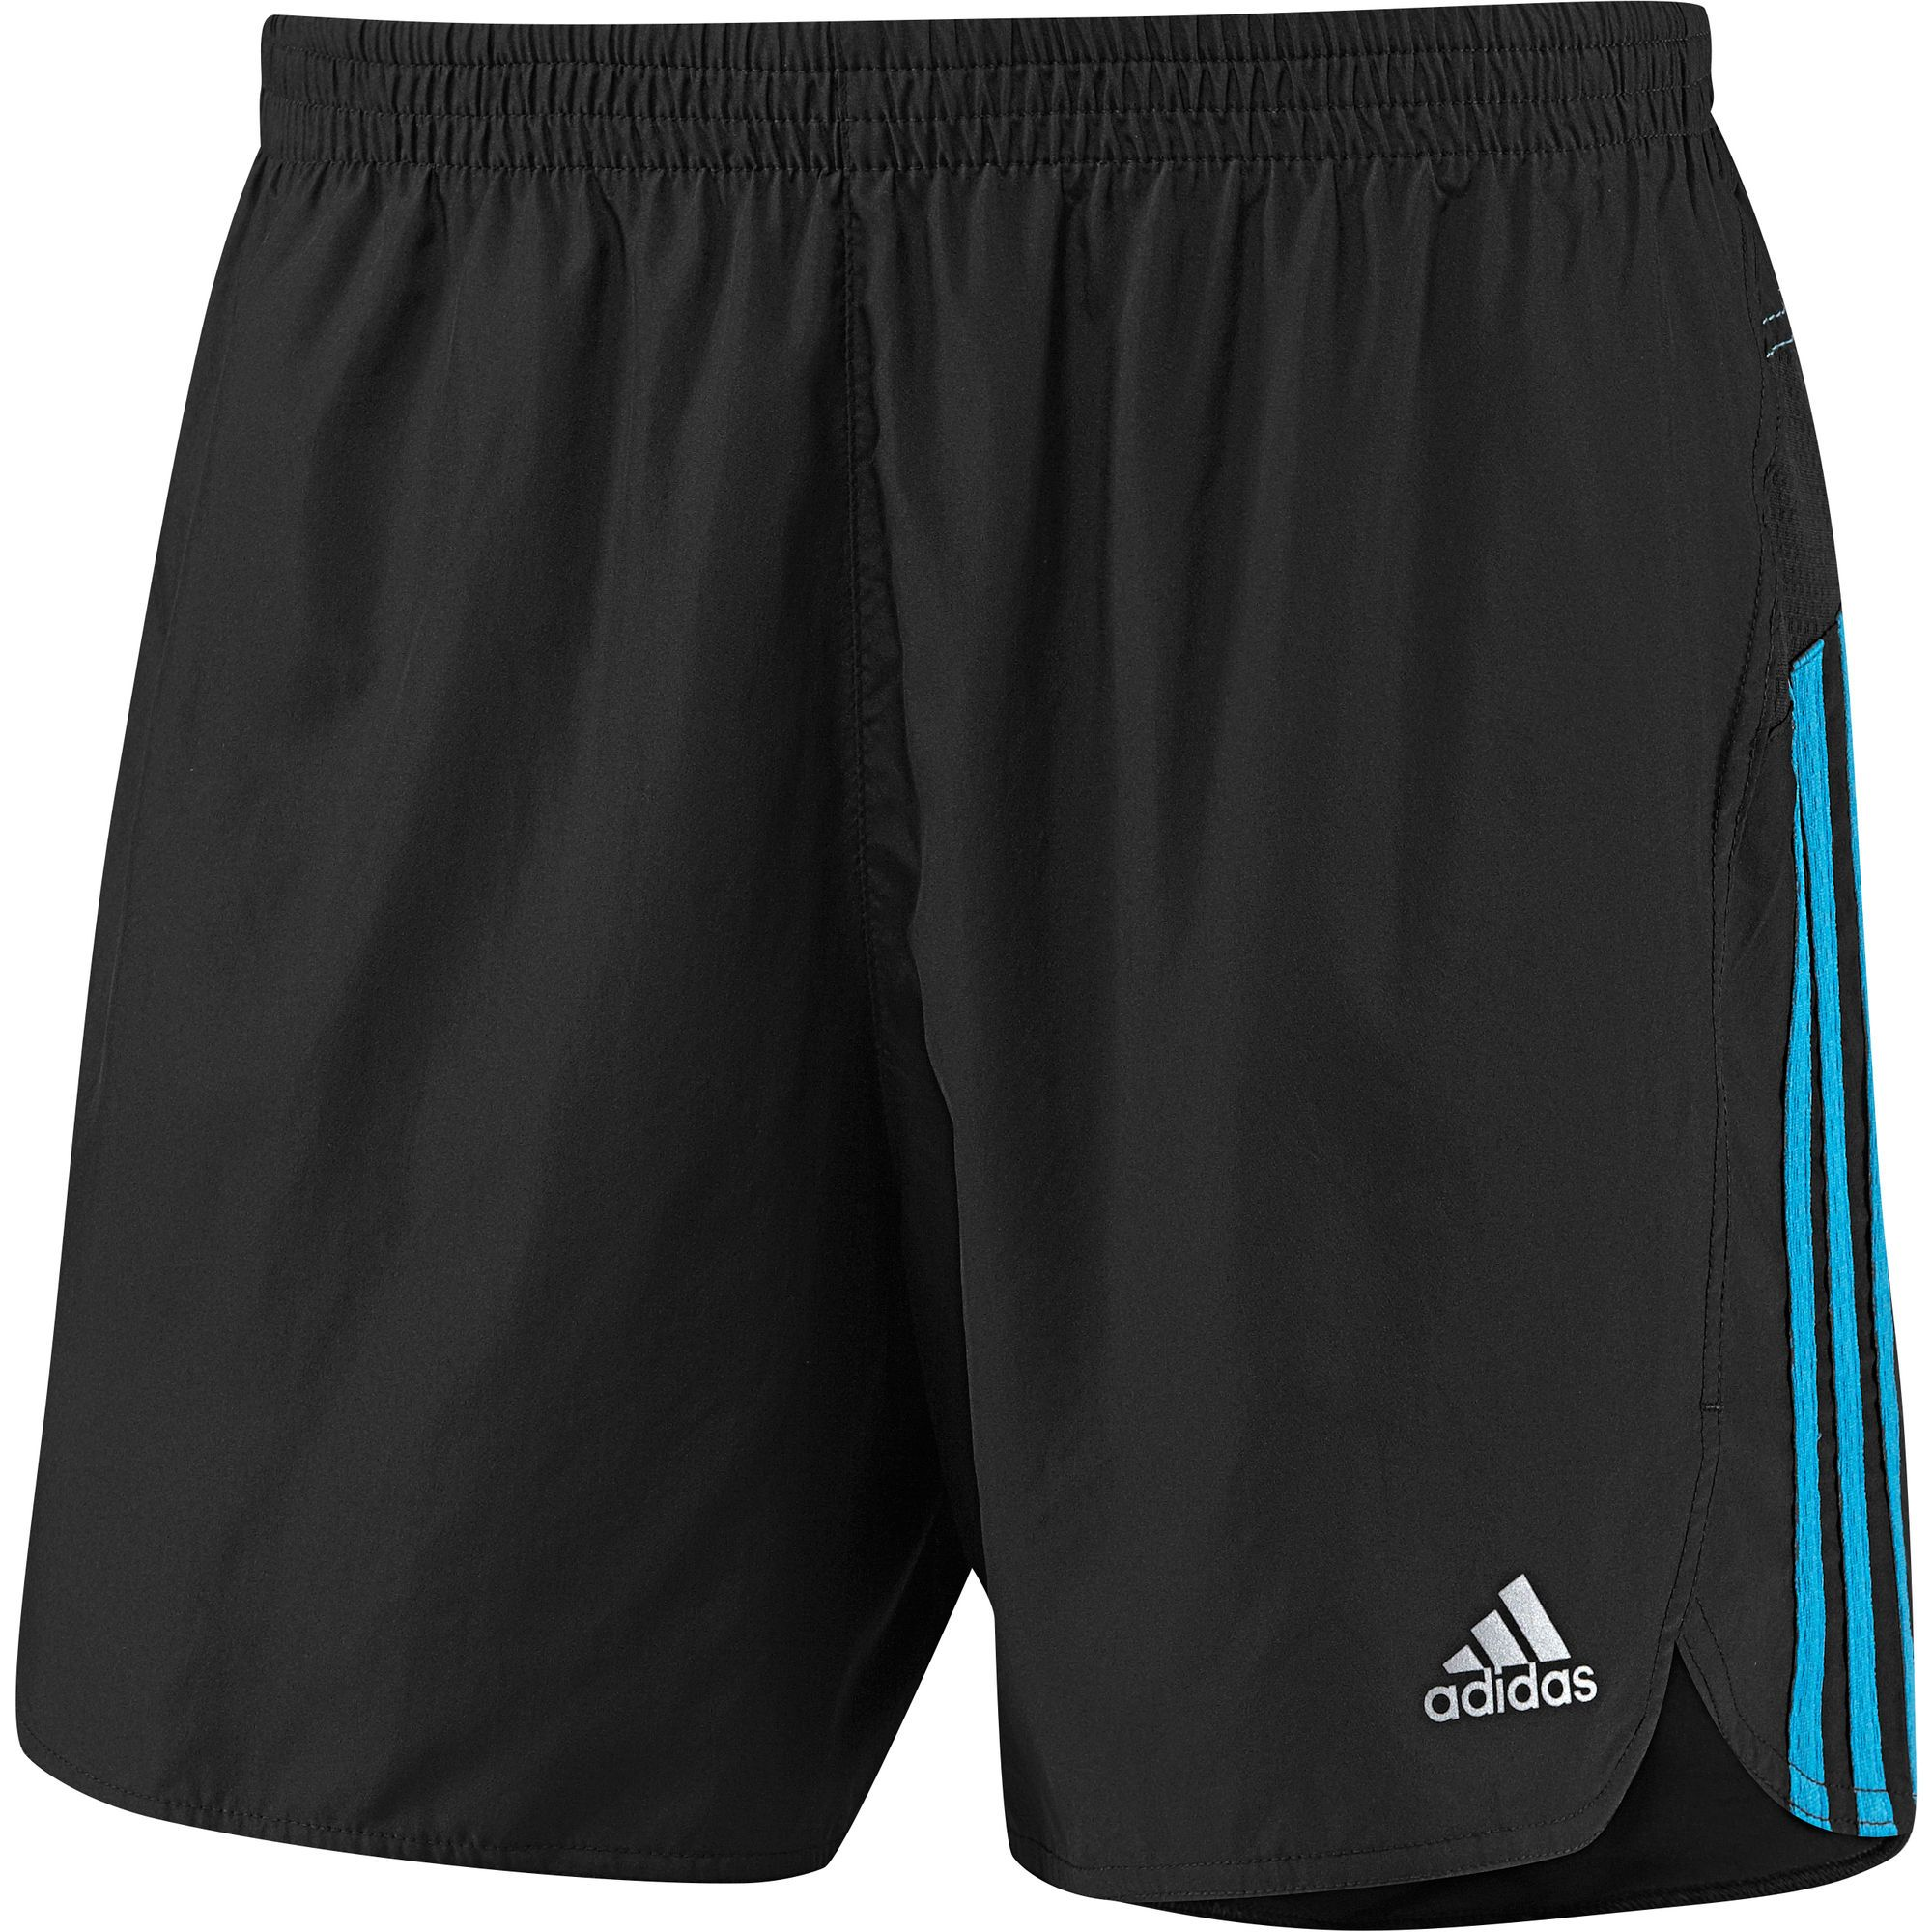 Running Adidas Short Baggy Response Ss14 Shorts Wiggle 5 Yqv7Yw